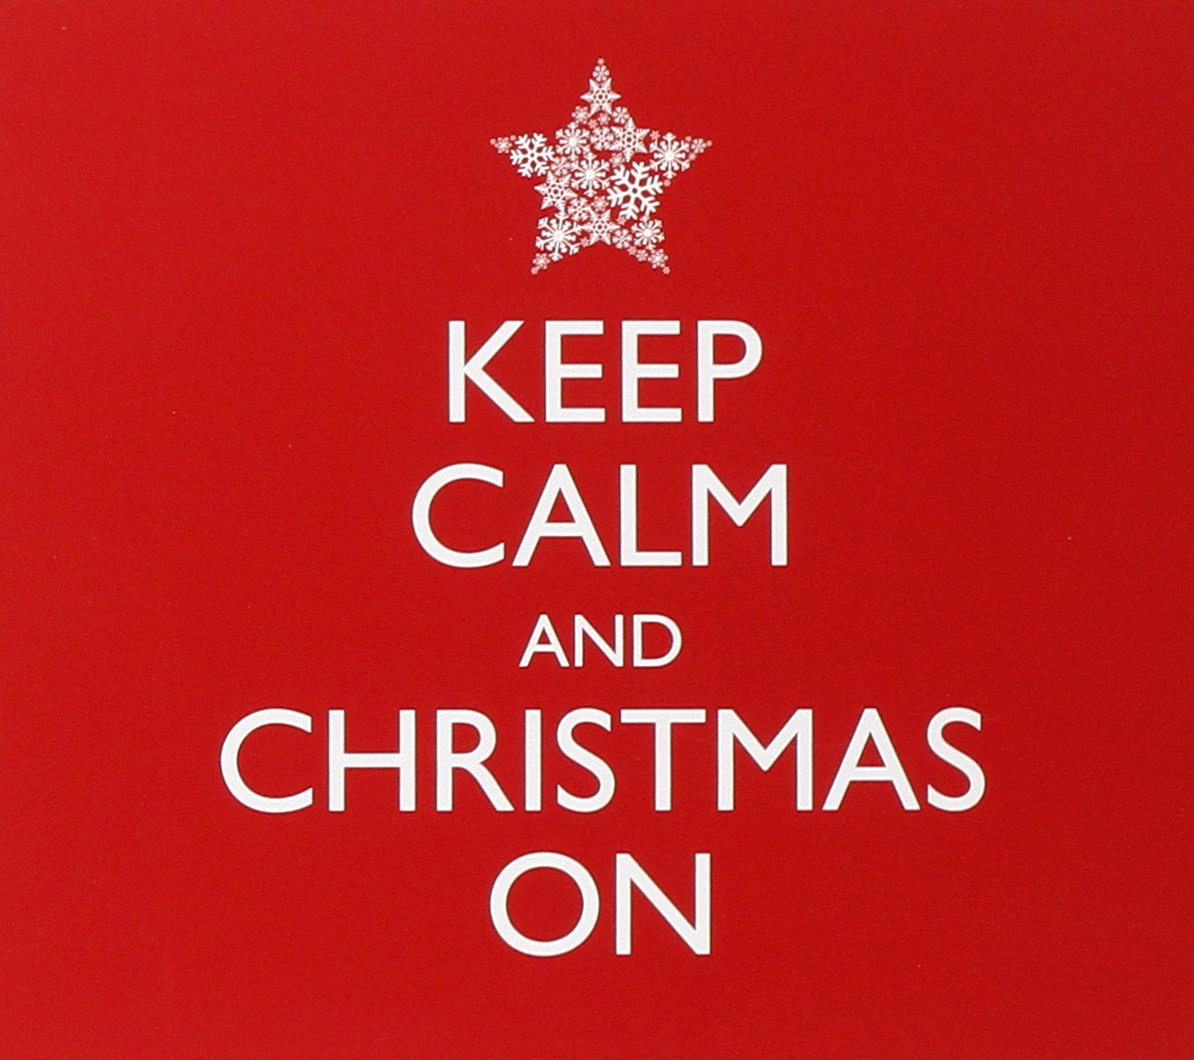 Keep Calm & Christmas - Keep Calm & Christmas on - Amazon.com Music